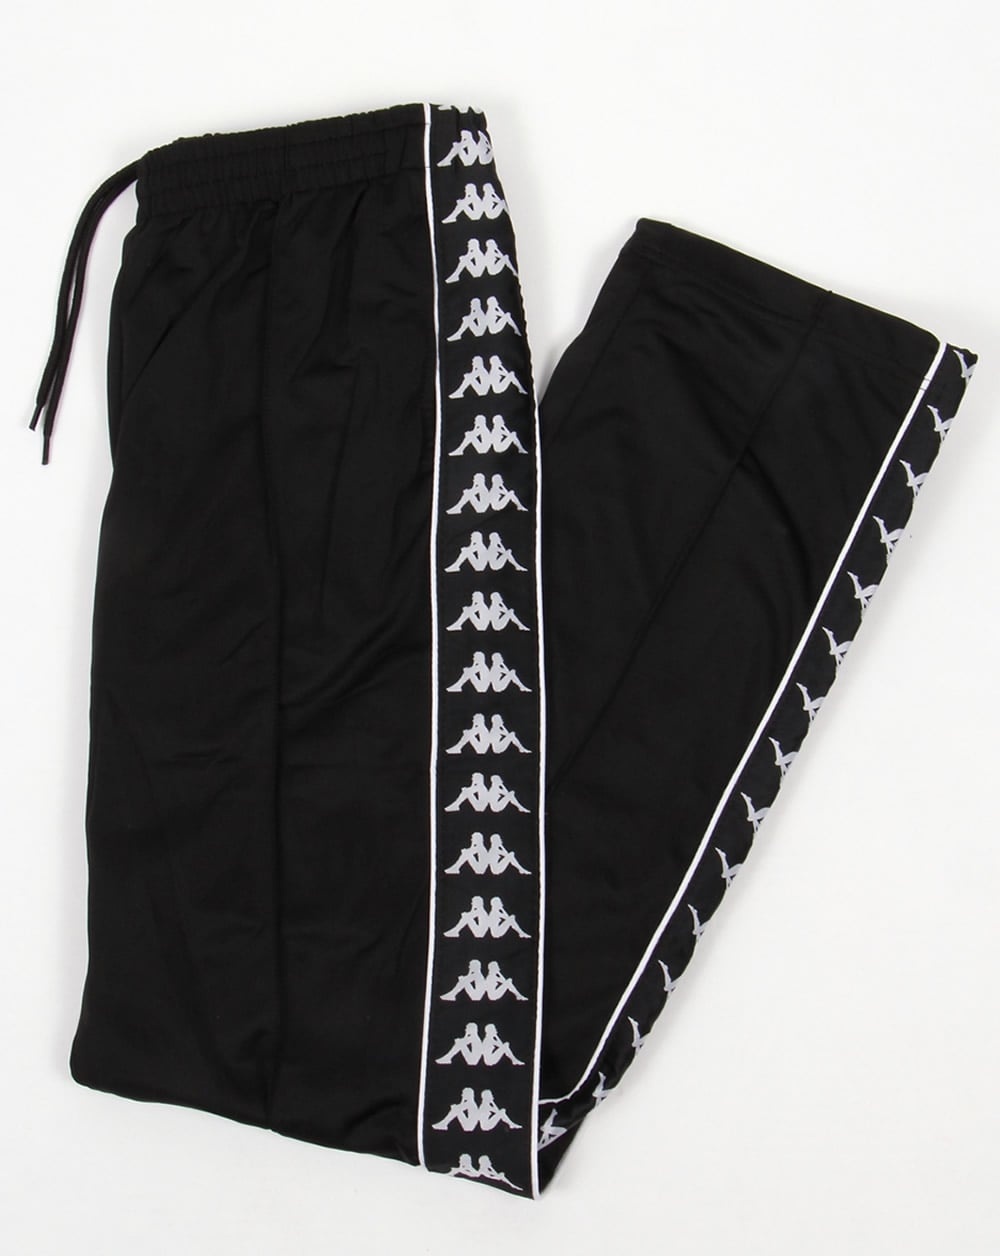 6b71a2b38a Robe Di Kappa Banda Track Bottoms Black - Tracksuit Bottoms from 80s ...